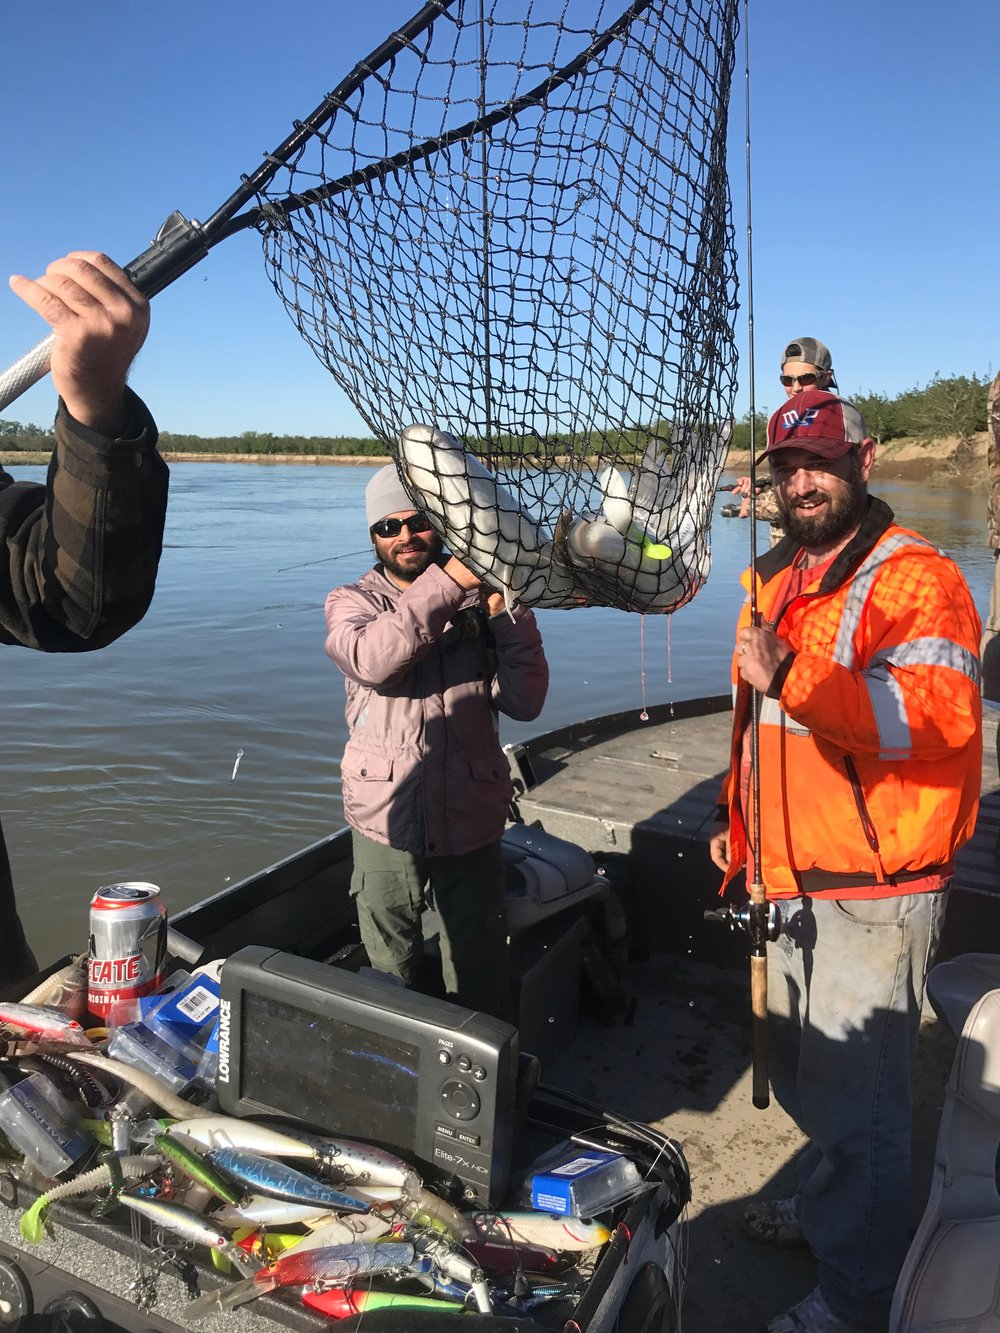 Jeff Guinn and Satinar Chatwell landing a double hook-up on the Sacramento River above Colusa, Ca on April 29, 2017. Bryan Wingrove and son Shawheen Wingrove are pictured in the back ground.